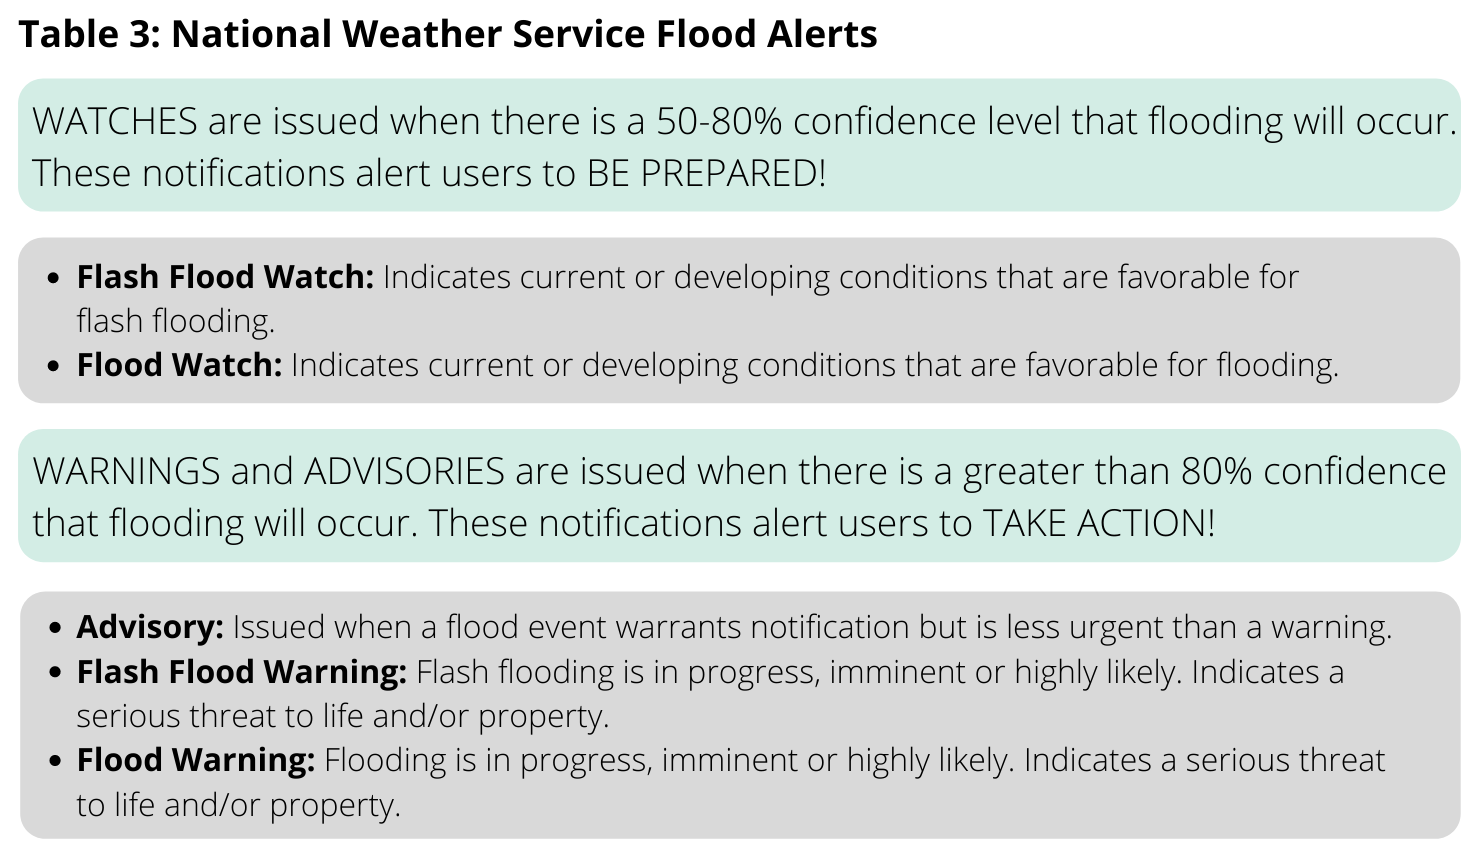 National Weather Service flood alert definitions